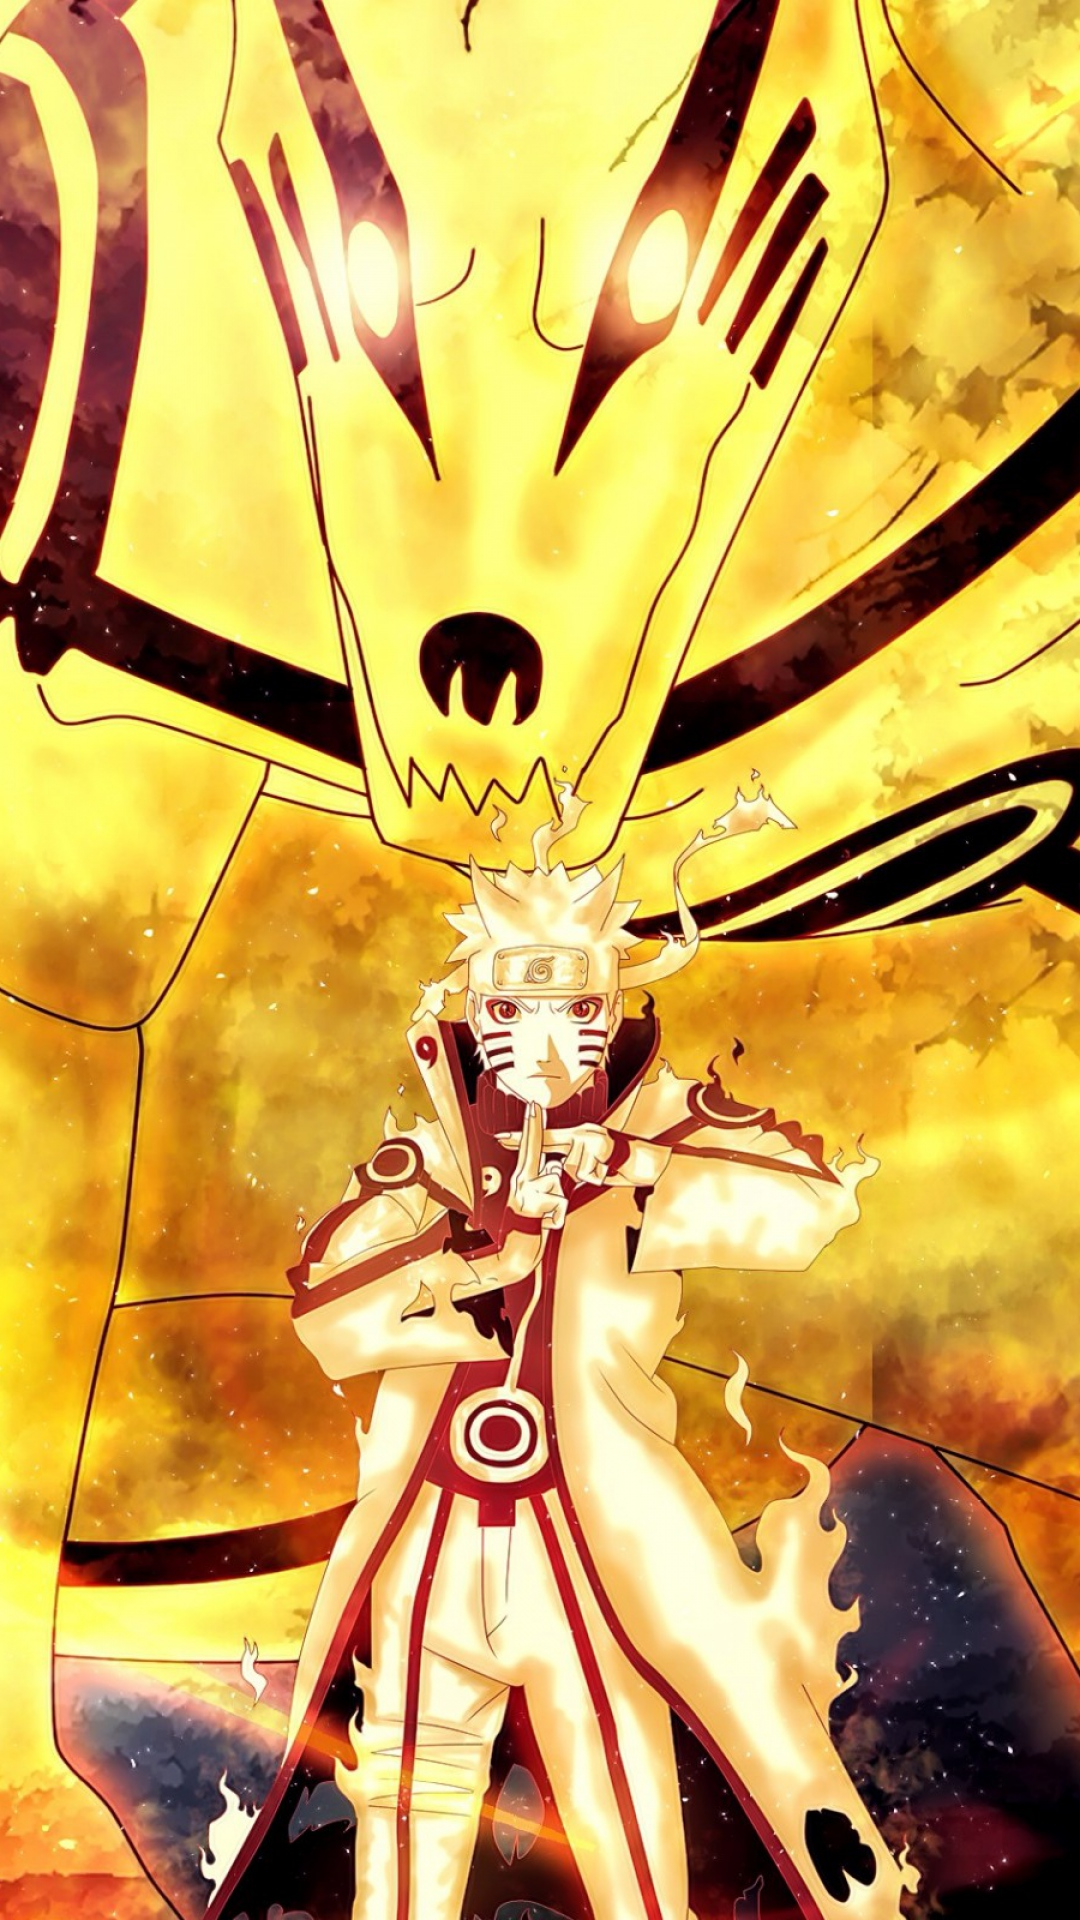 HD Naruto Iphone Wallpaper